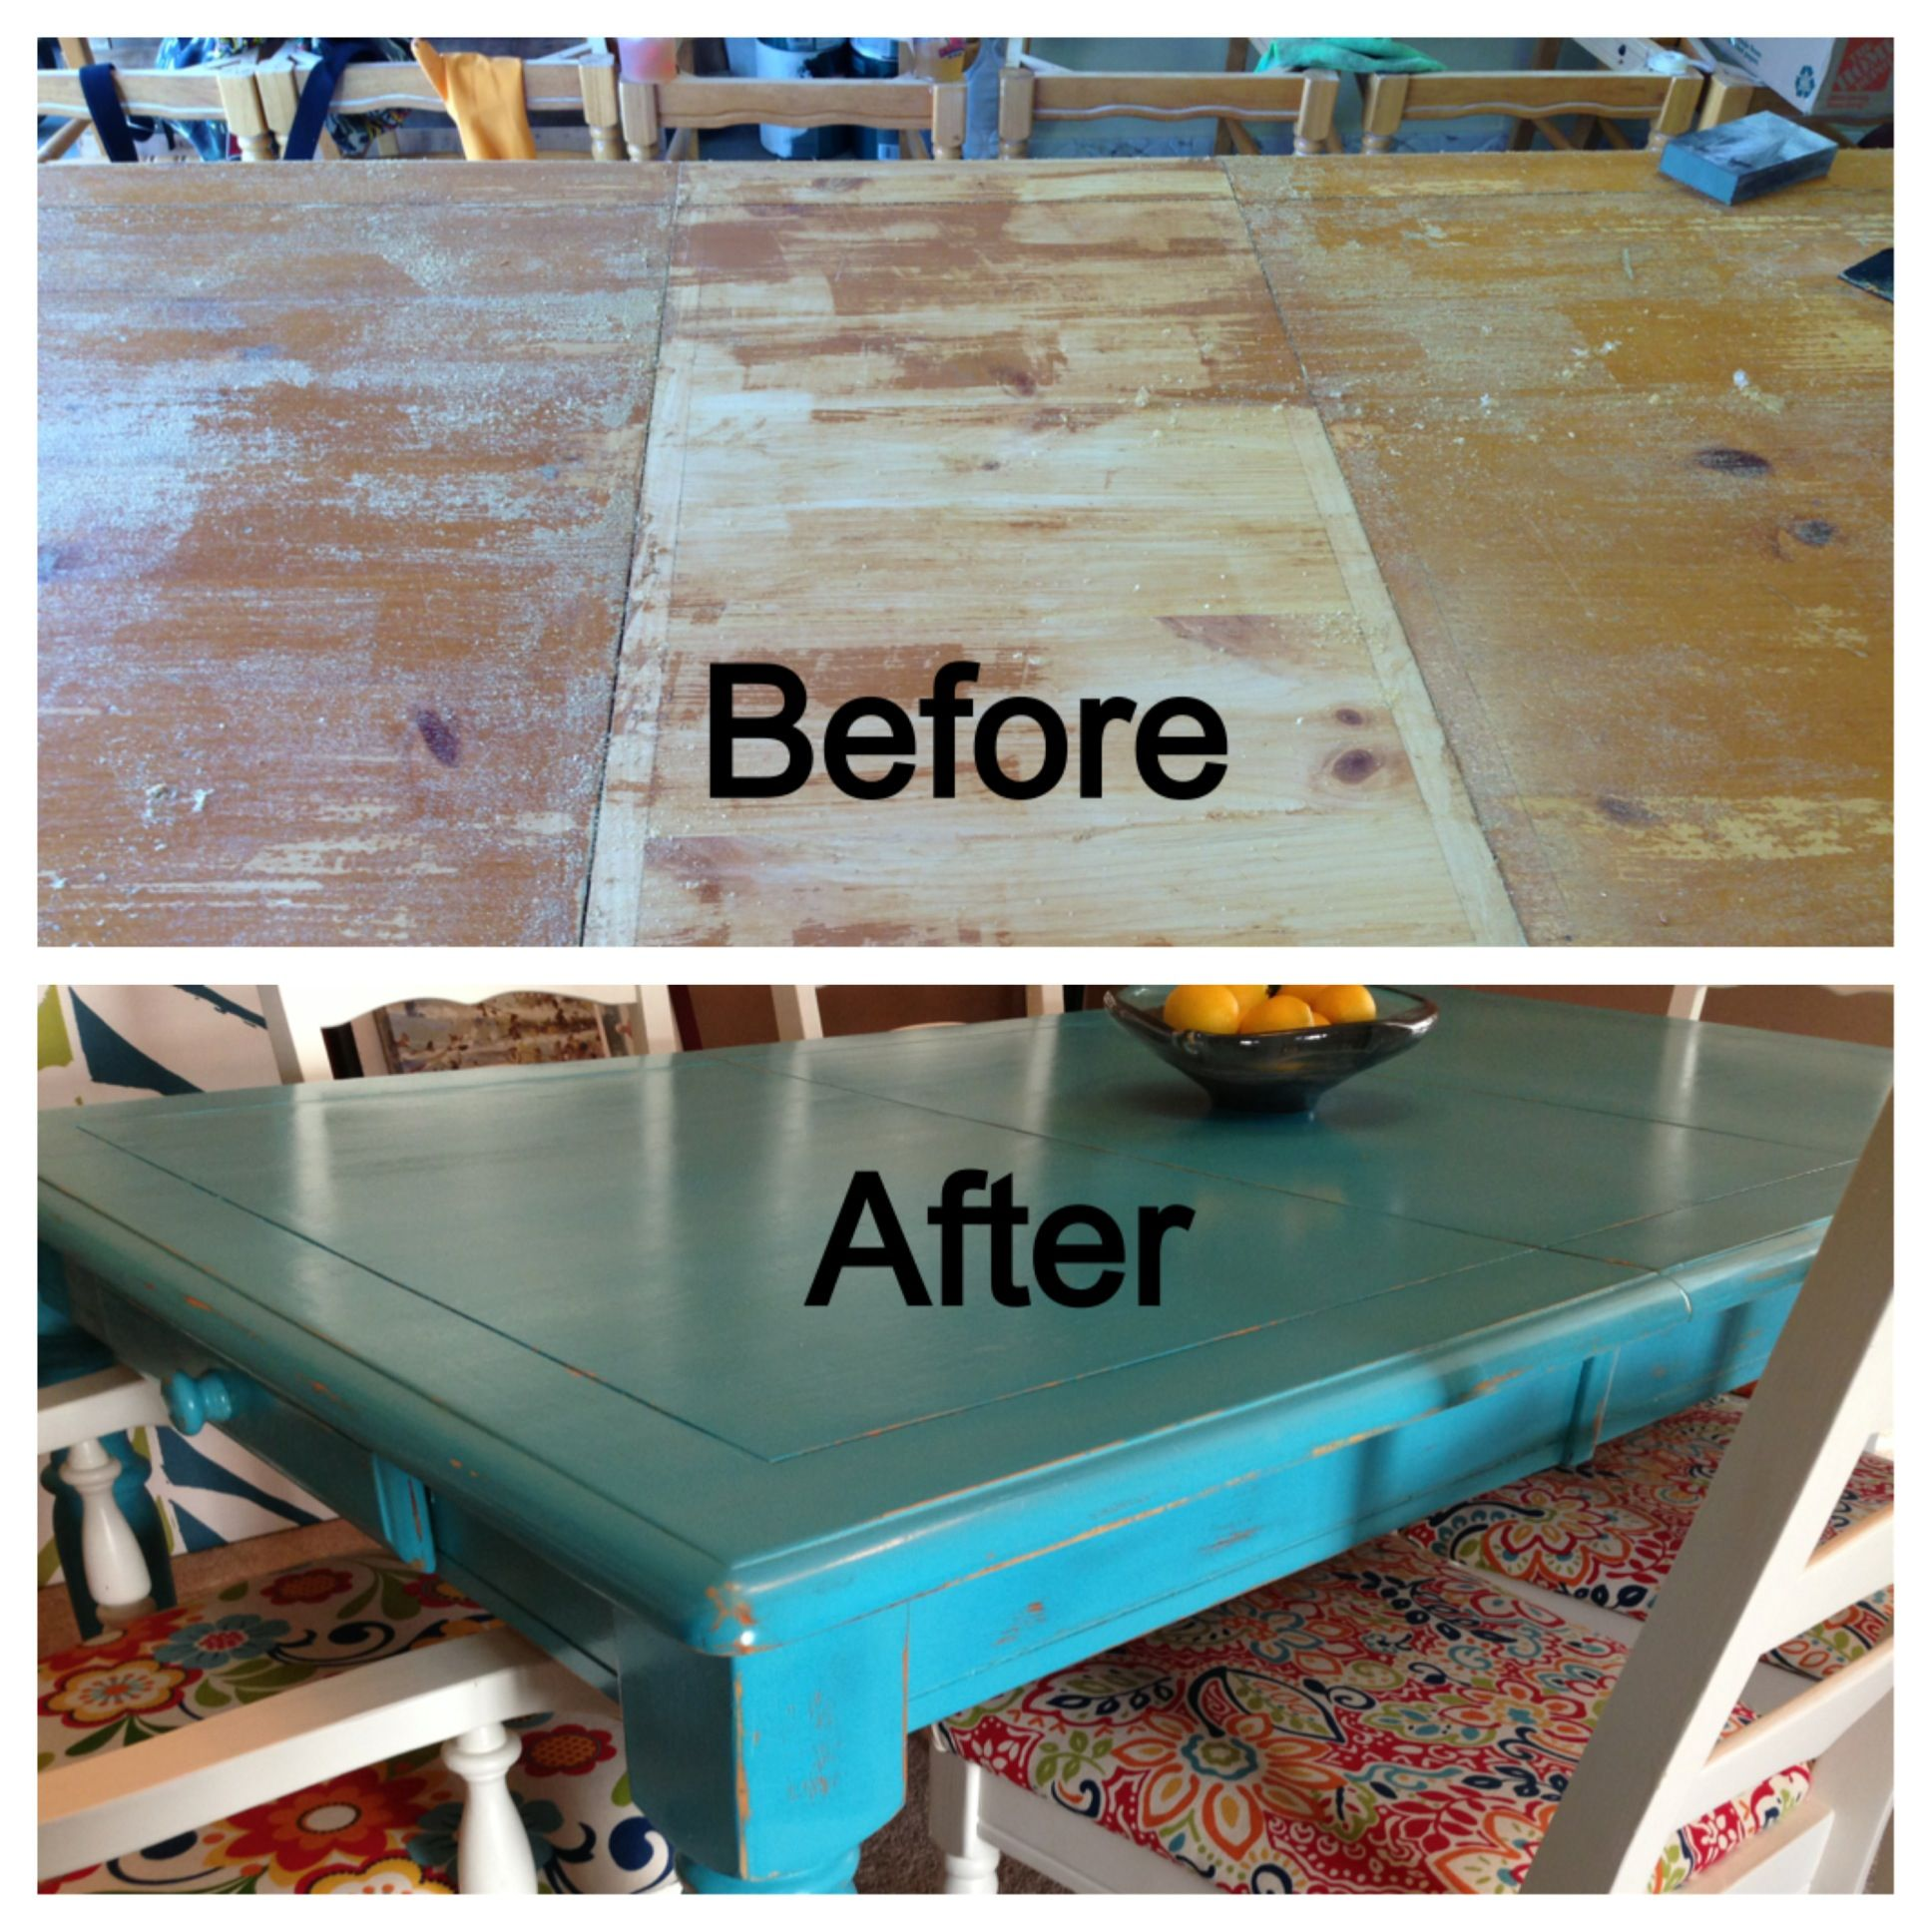 Refurbished Kitchen Table Ideas Part - 28: My New Refurbished Kitchen Table Took A Lot Of Time And Work But Its  Finally Finished